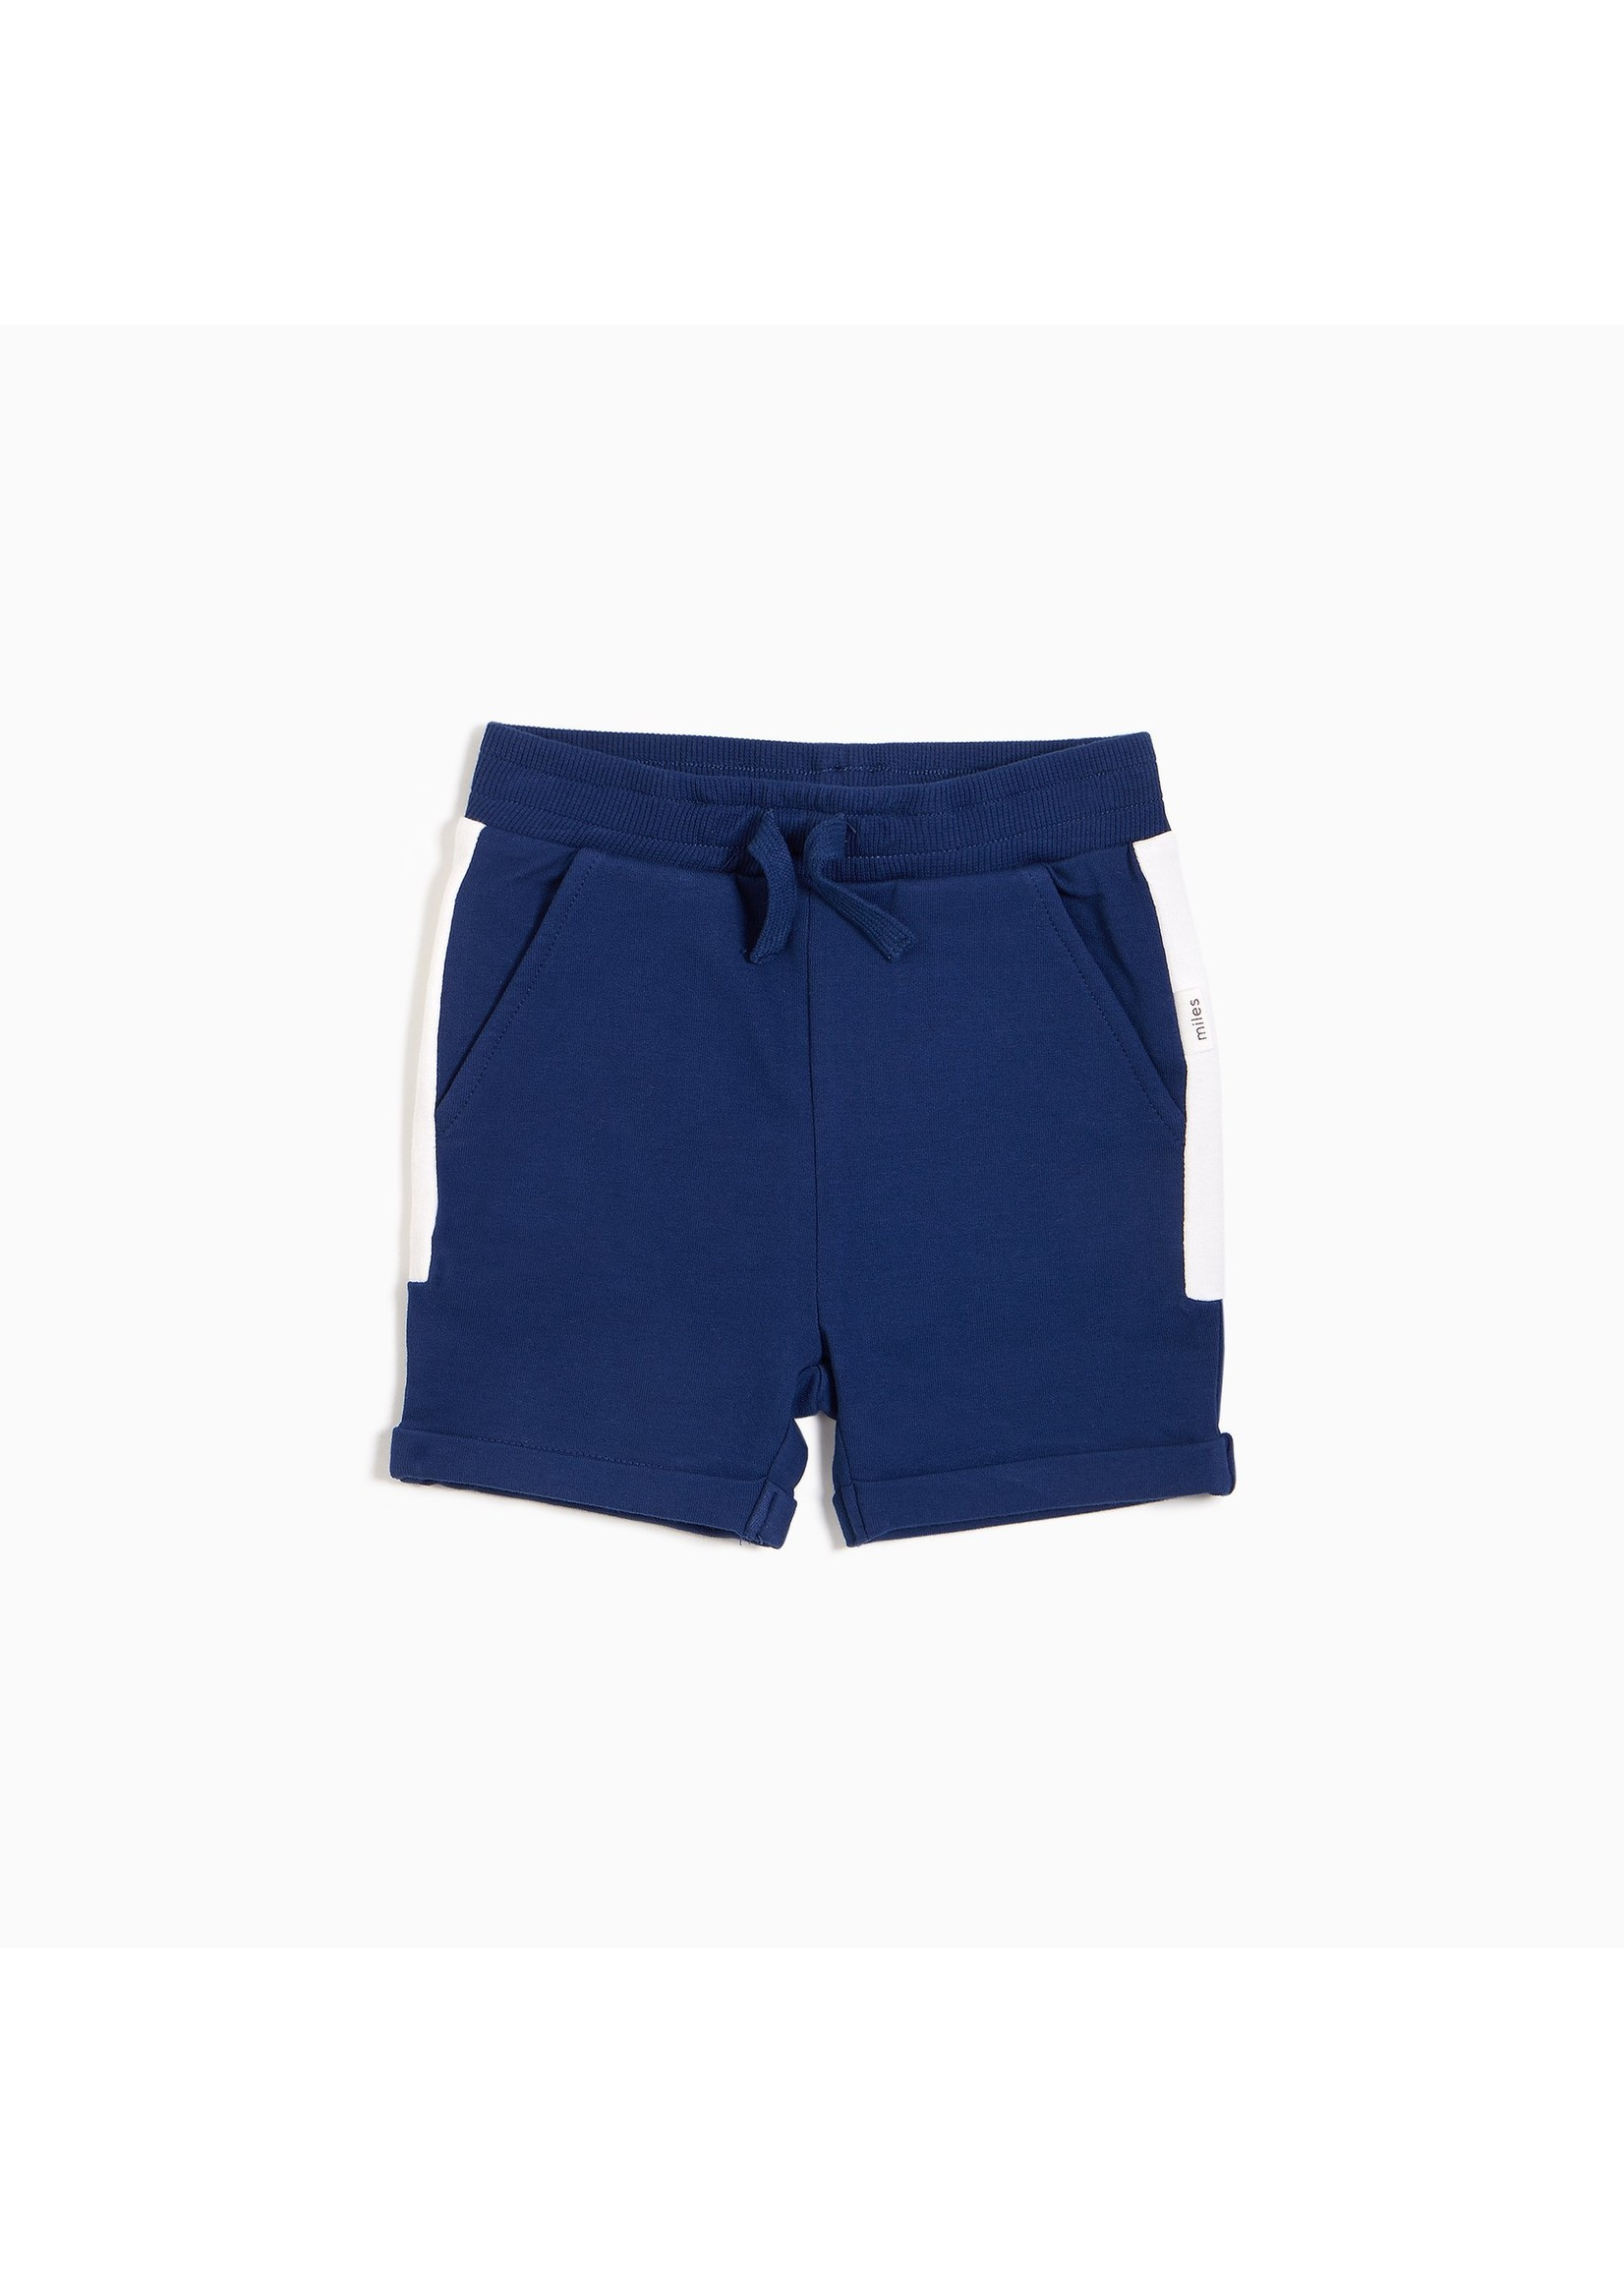 Miles Short Navy and White